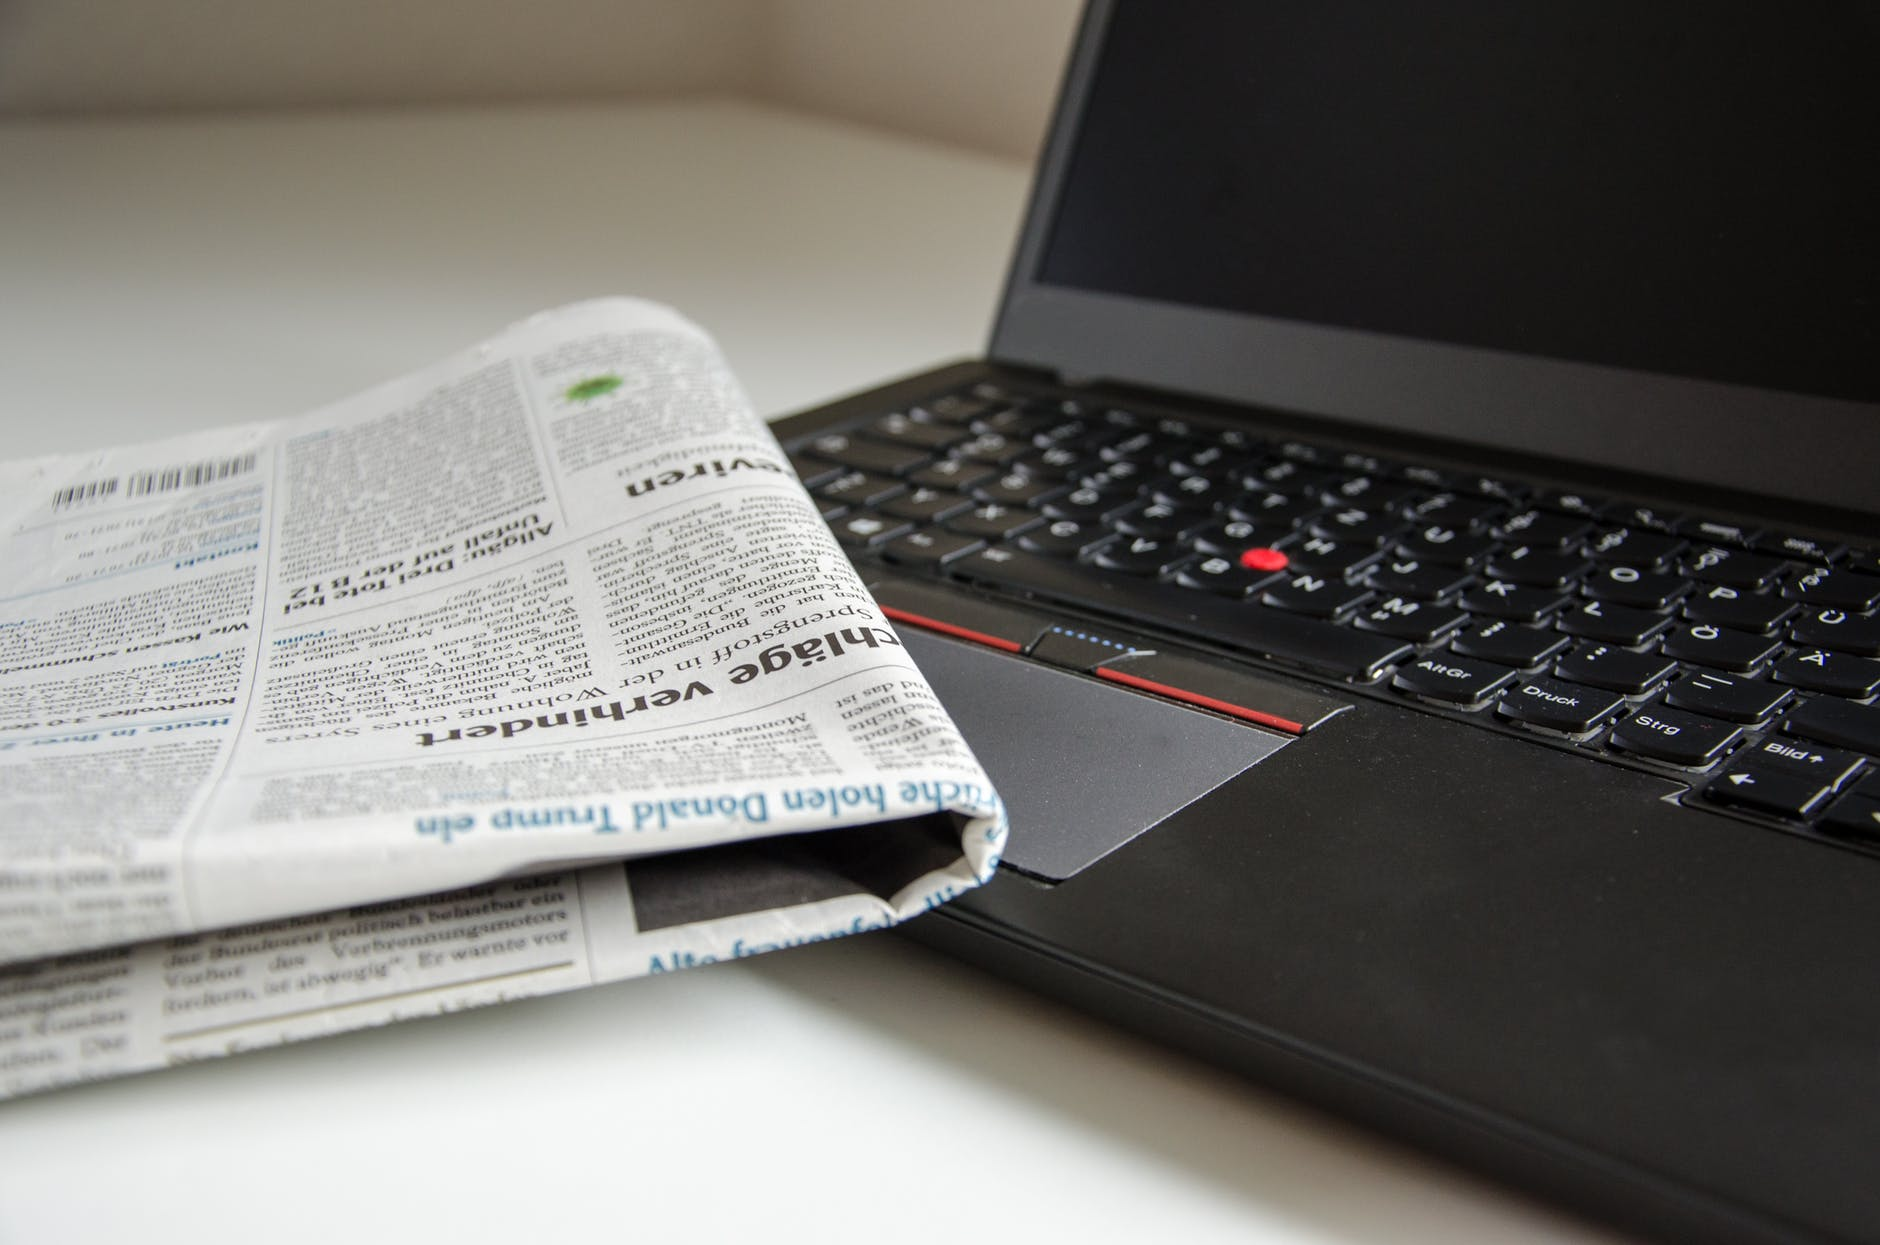 Picture of a laptop and a printed financial newsletter